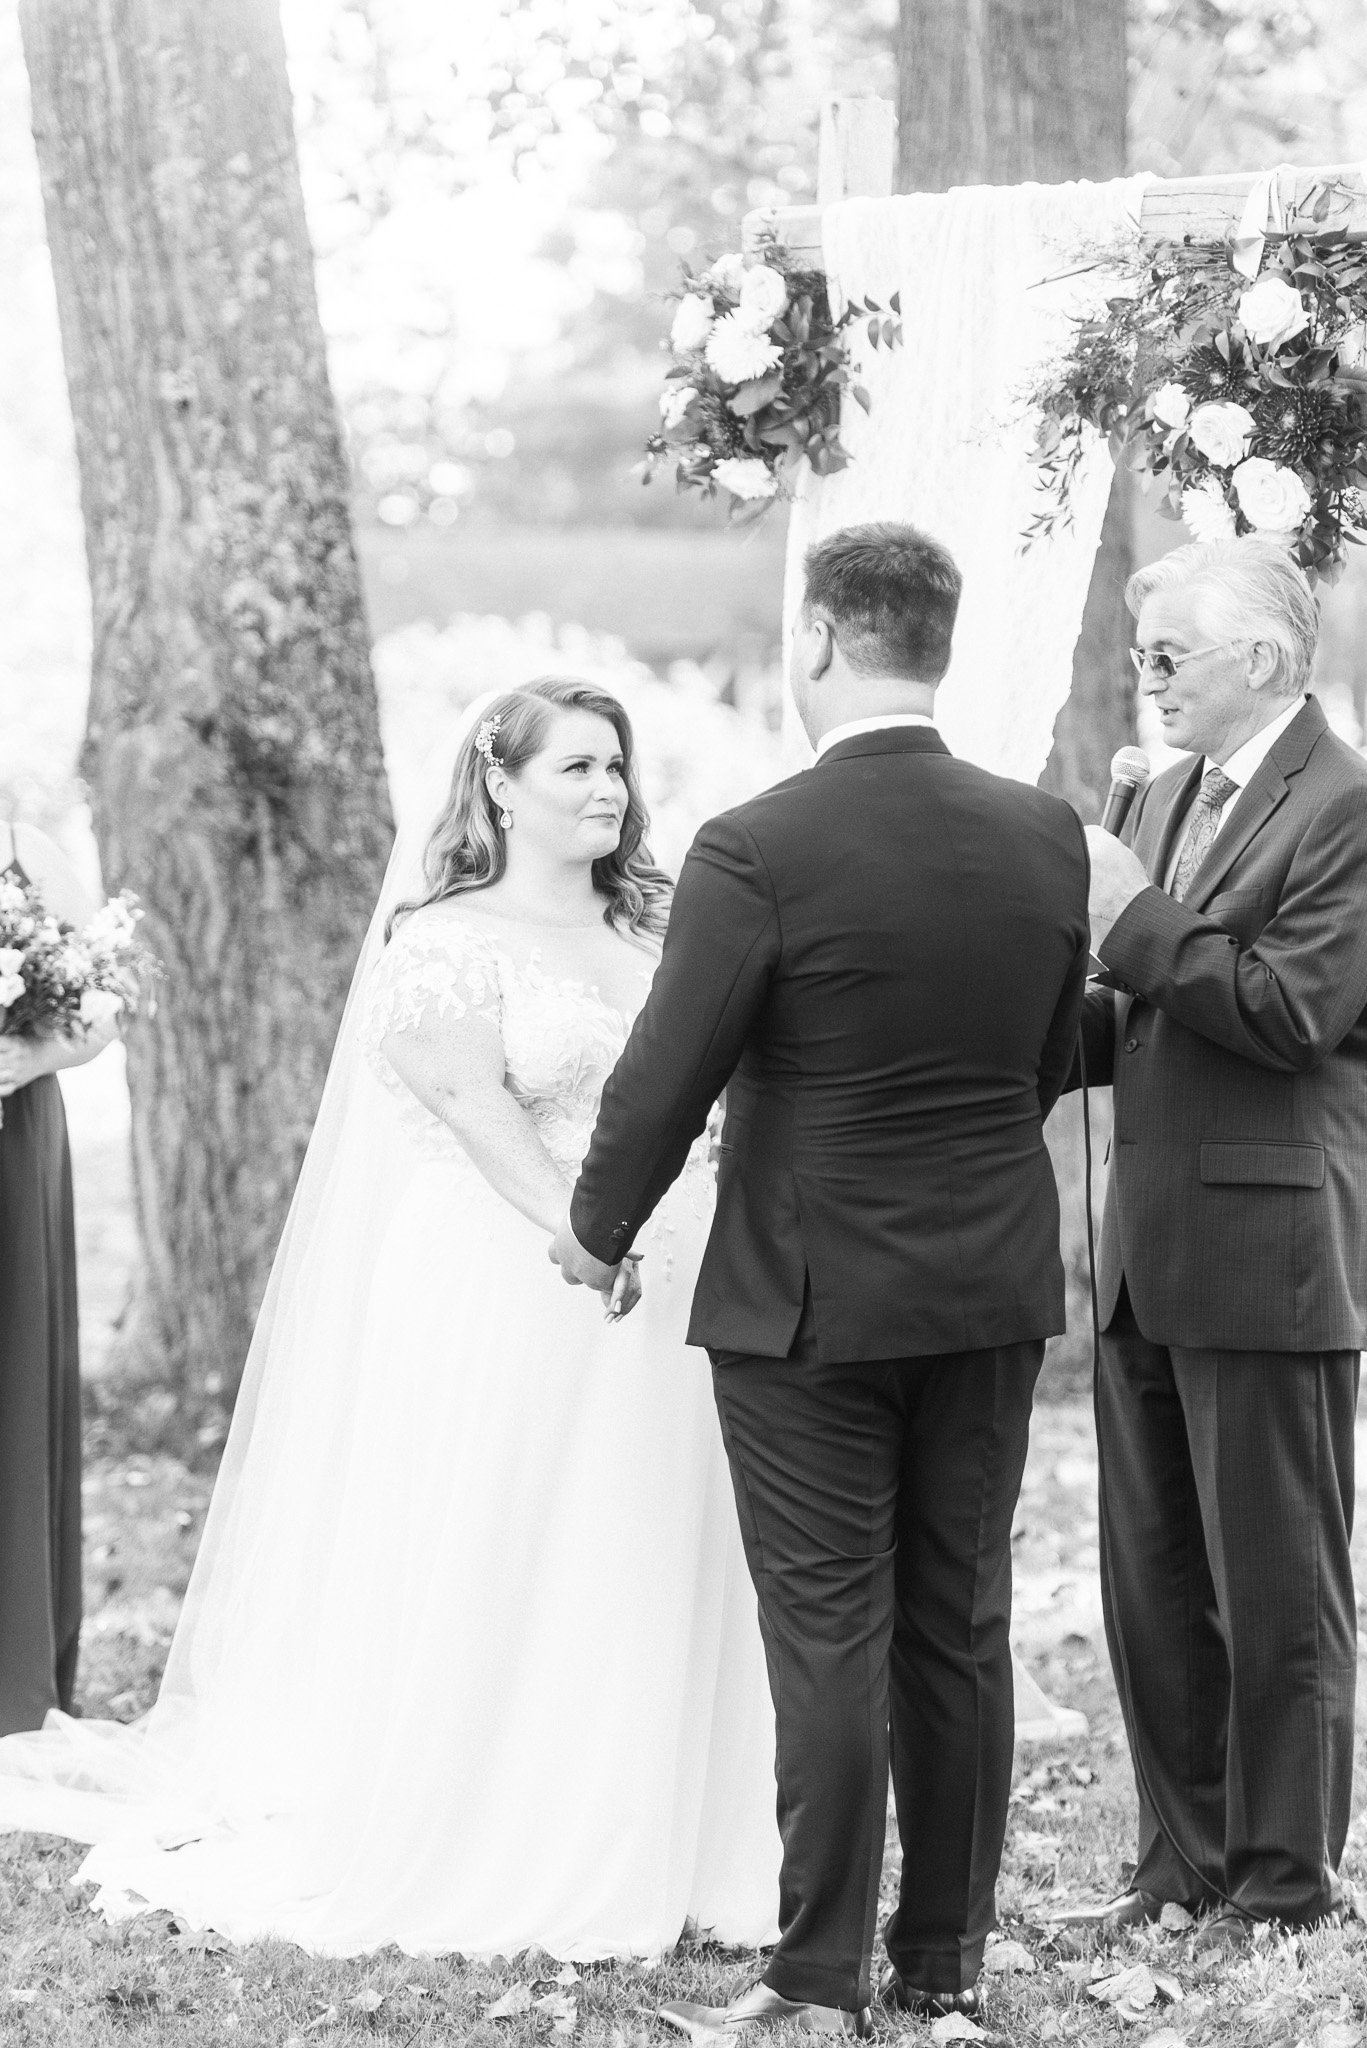 September Wedding at Tralee Wedding Facility by Jenn Kavanagh Photography